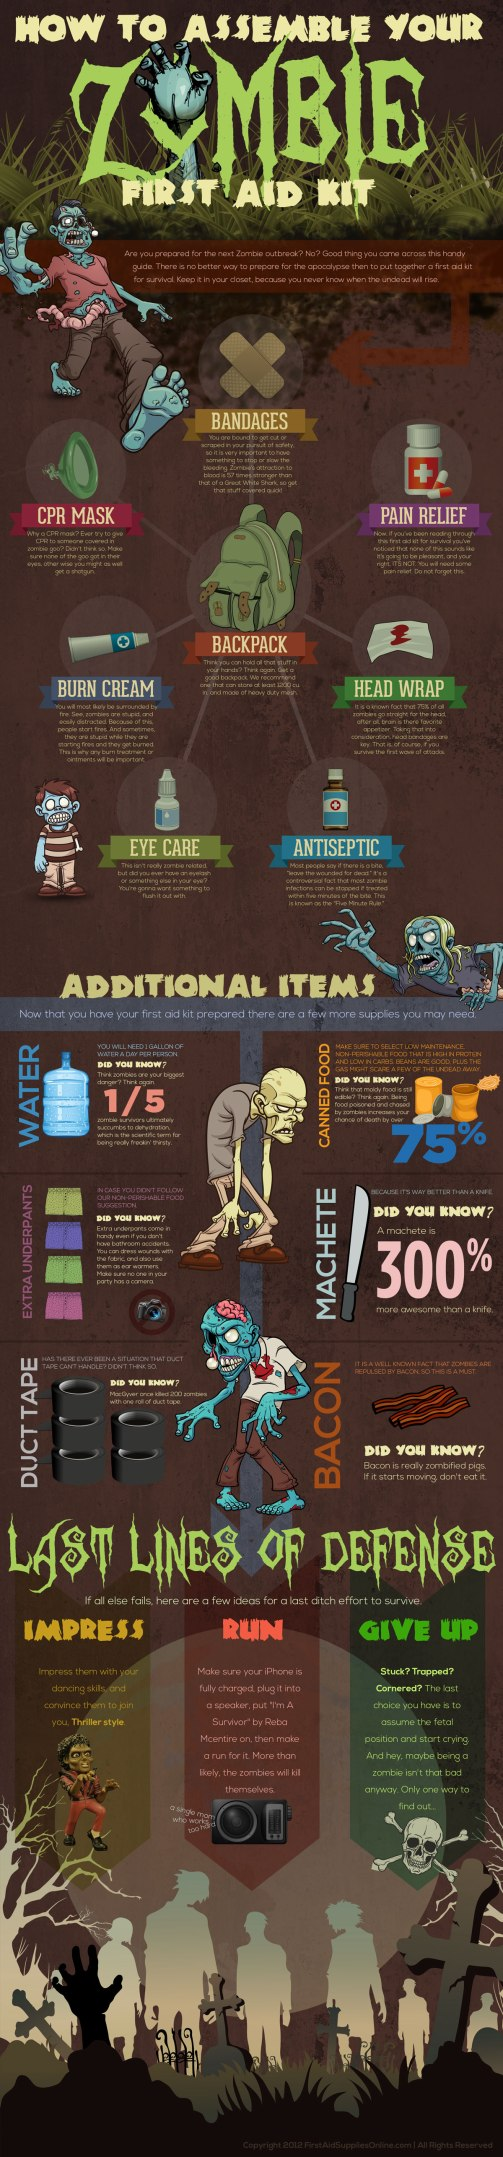 Zombie First Aid Kit